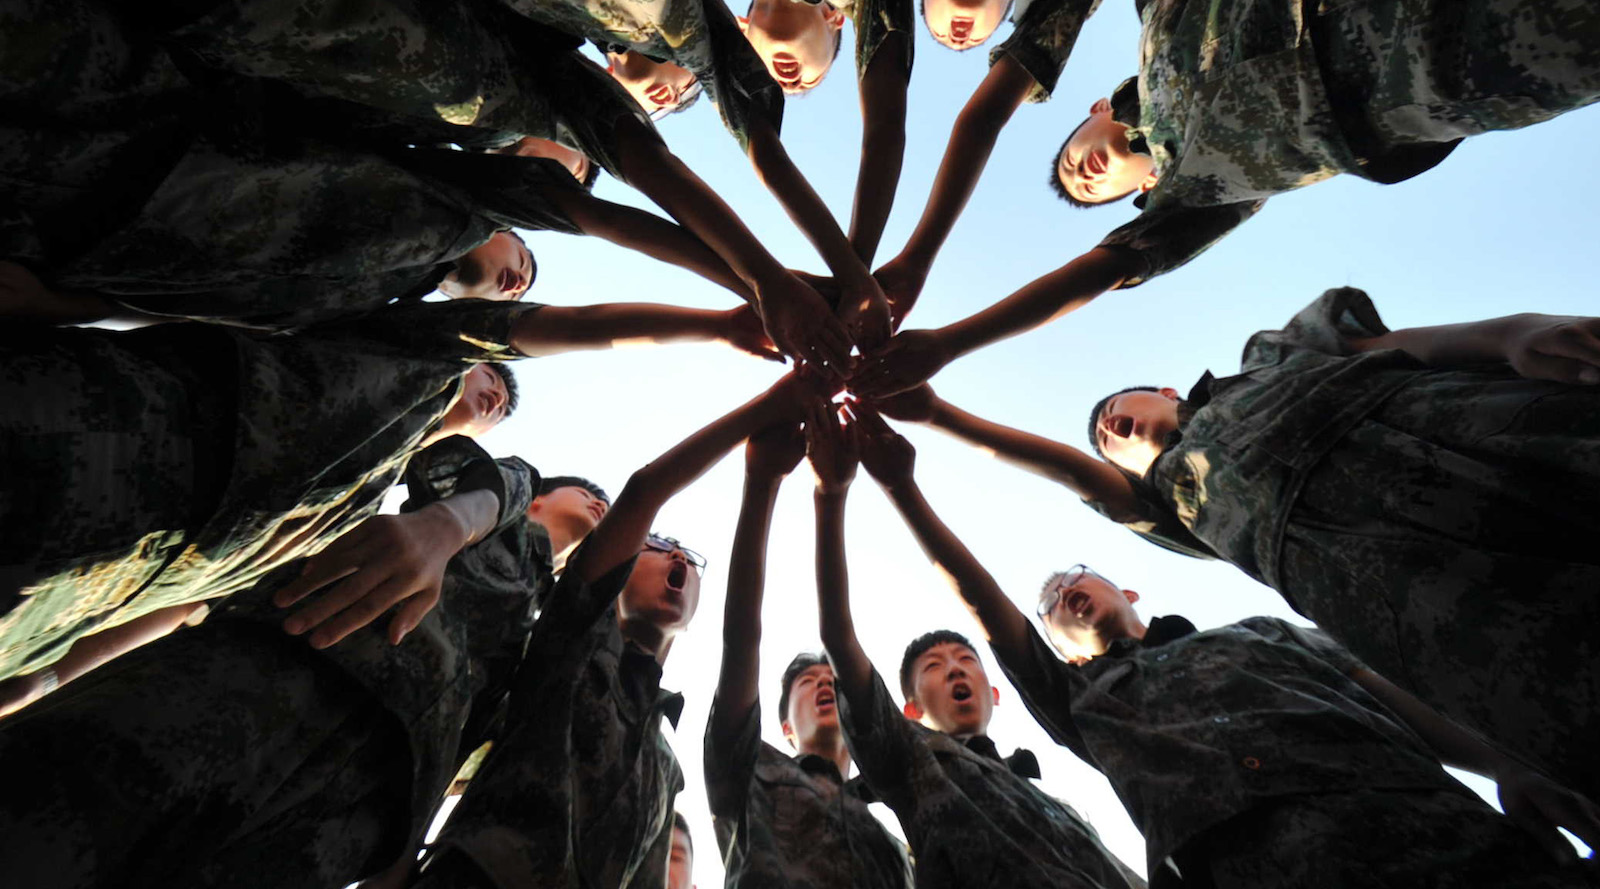 High school students cheer at a military camp in Shanxi Province, China (Photo: VCG via Getty)